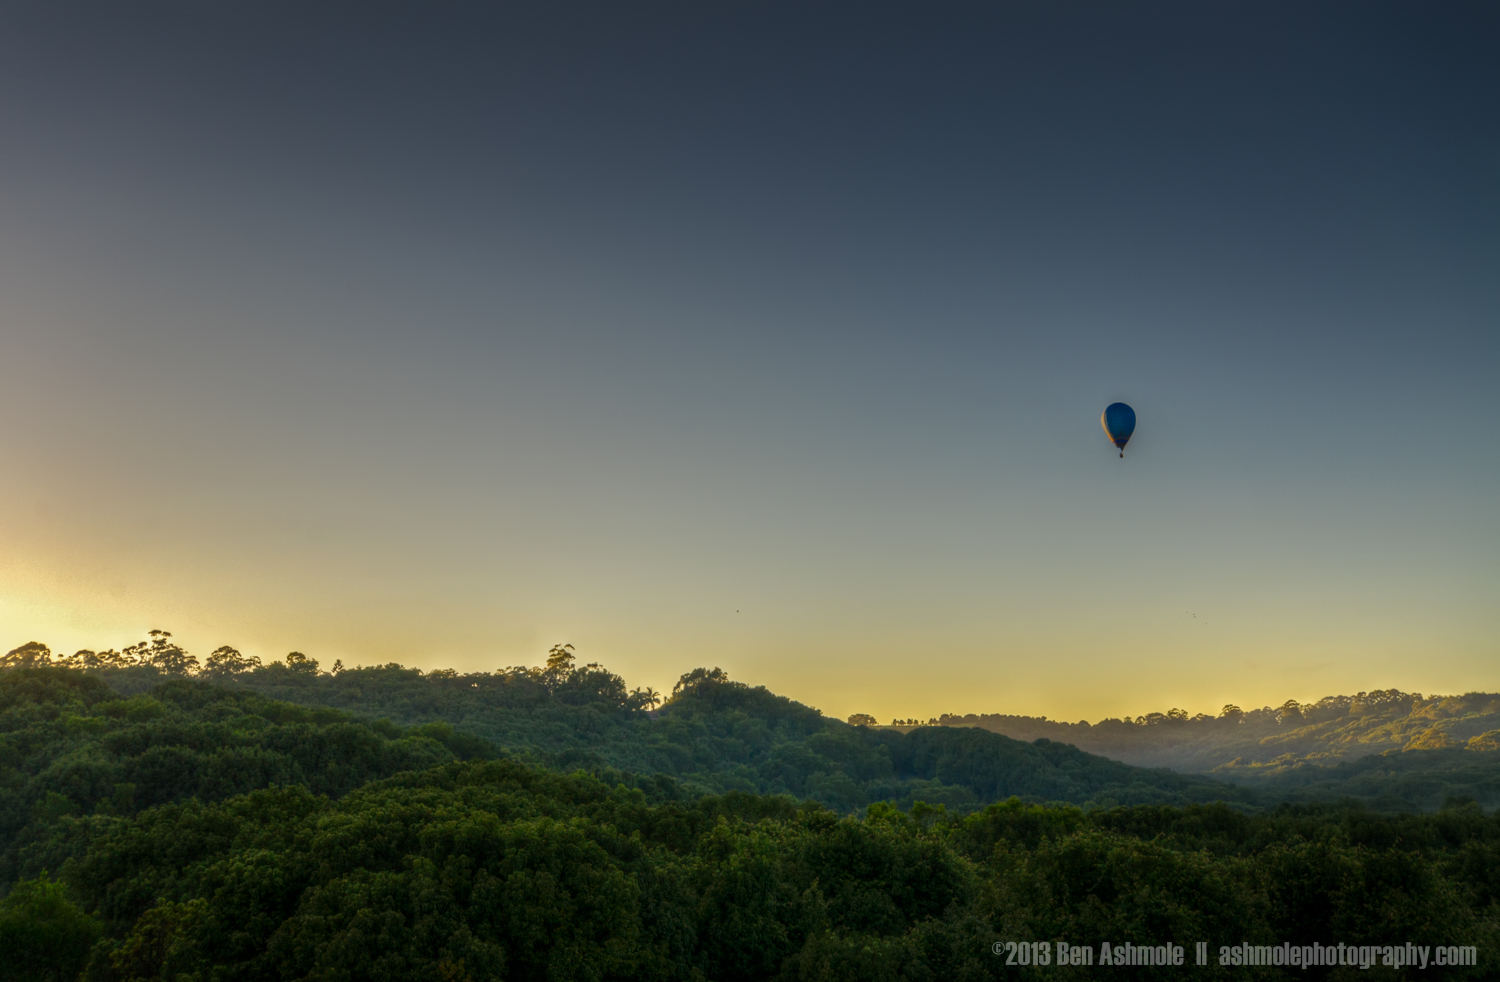 The Golden Balloon Ride, Byron Bay, New South Wales, Australia